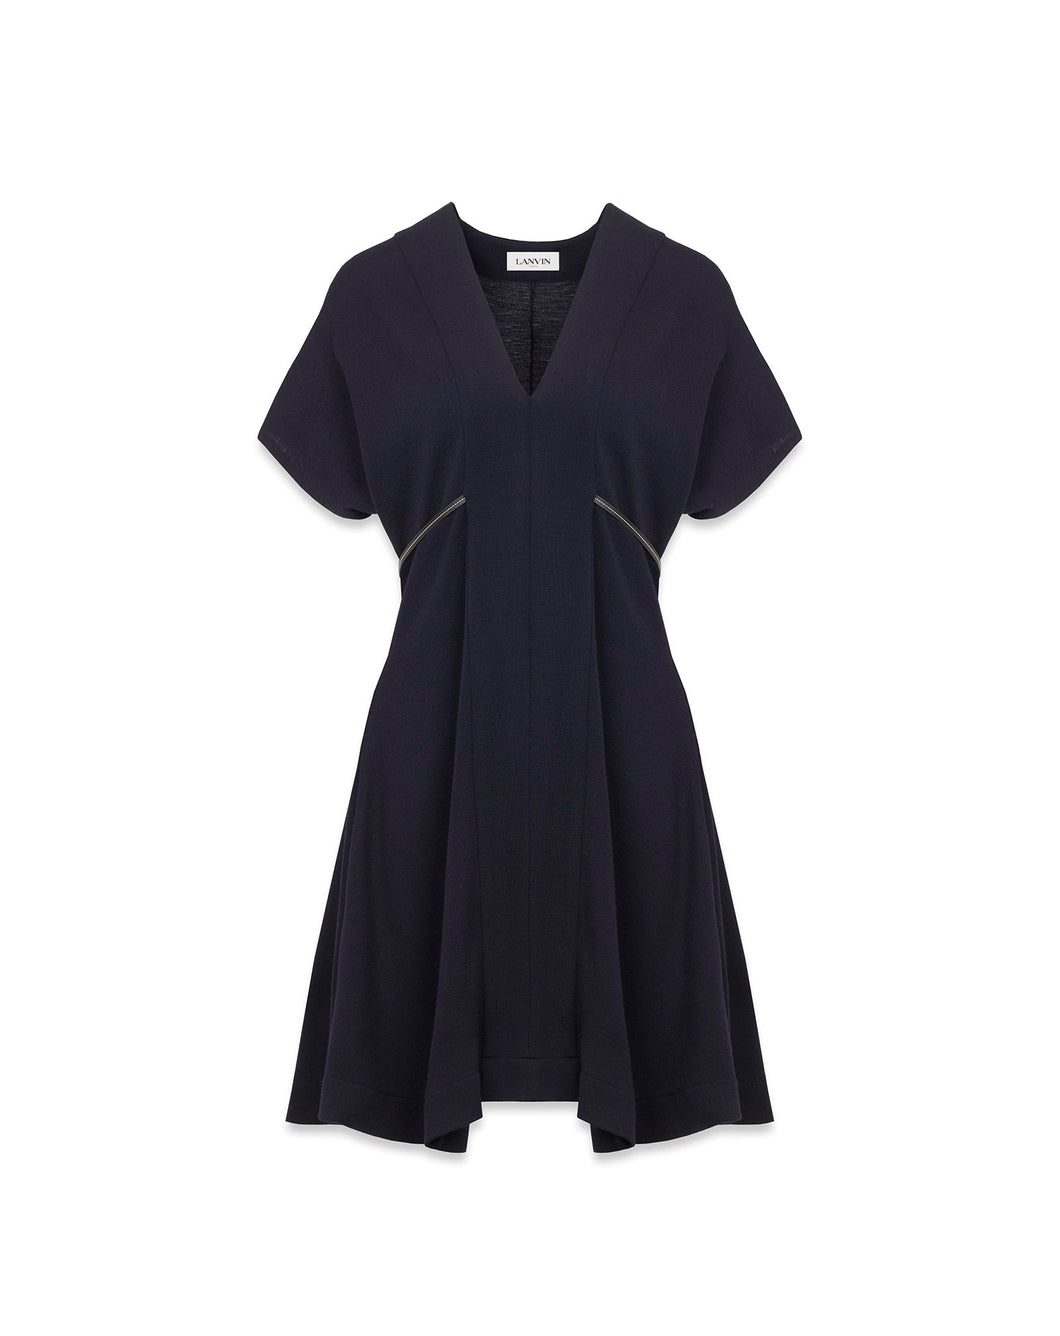 LANVIN - Navy Blue Jersey Dress